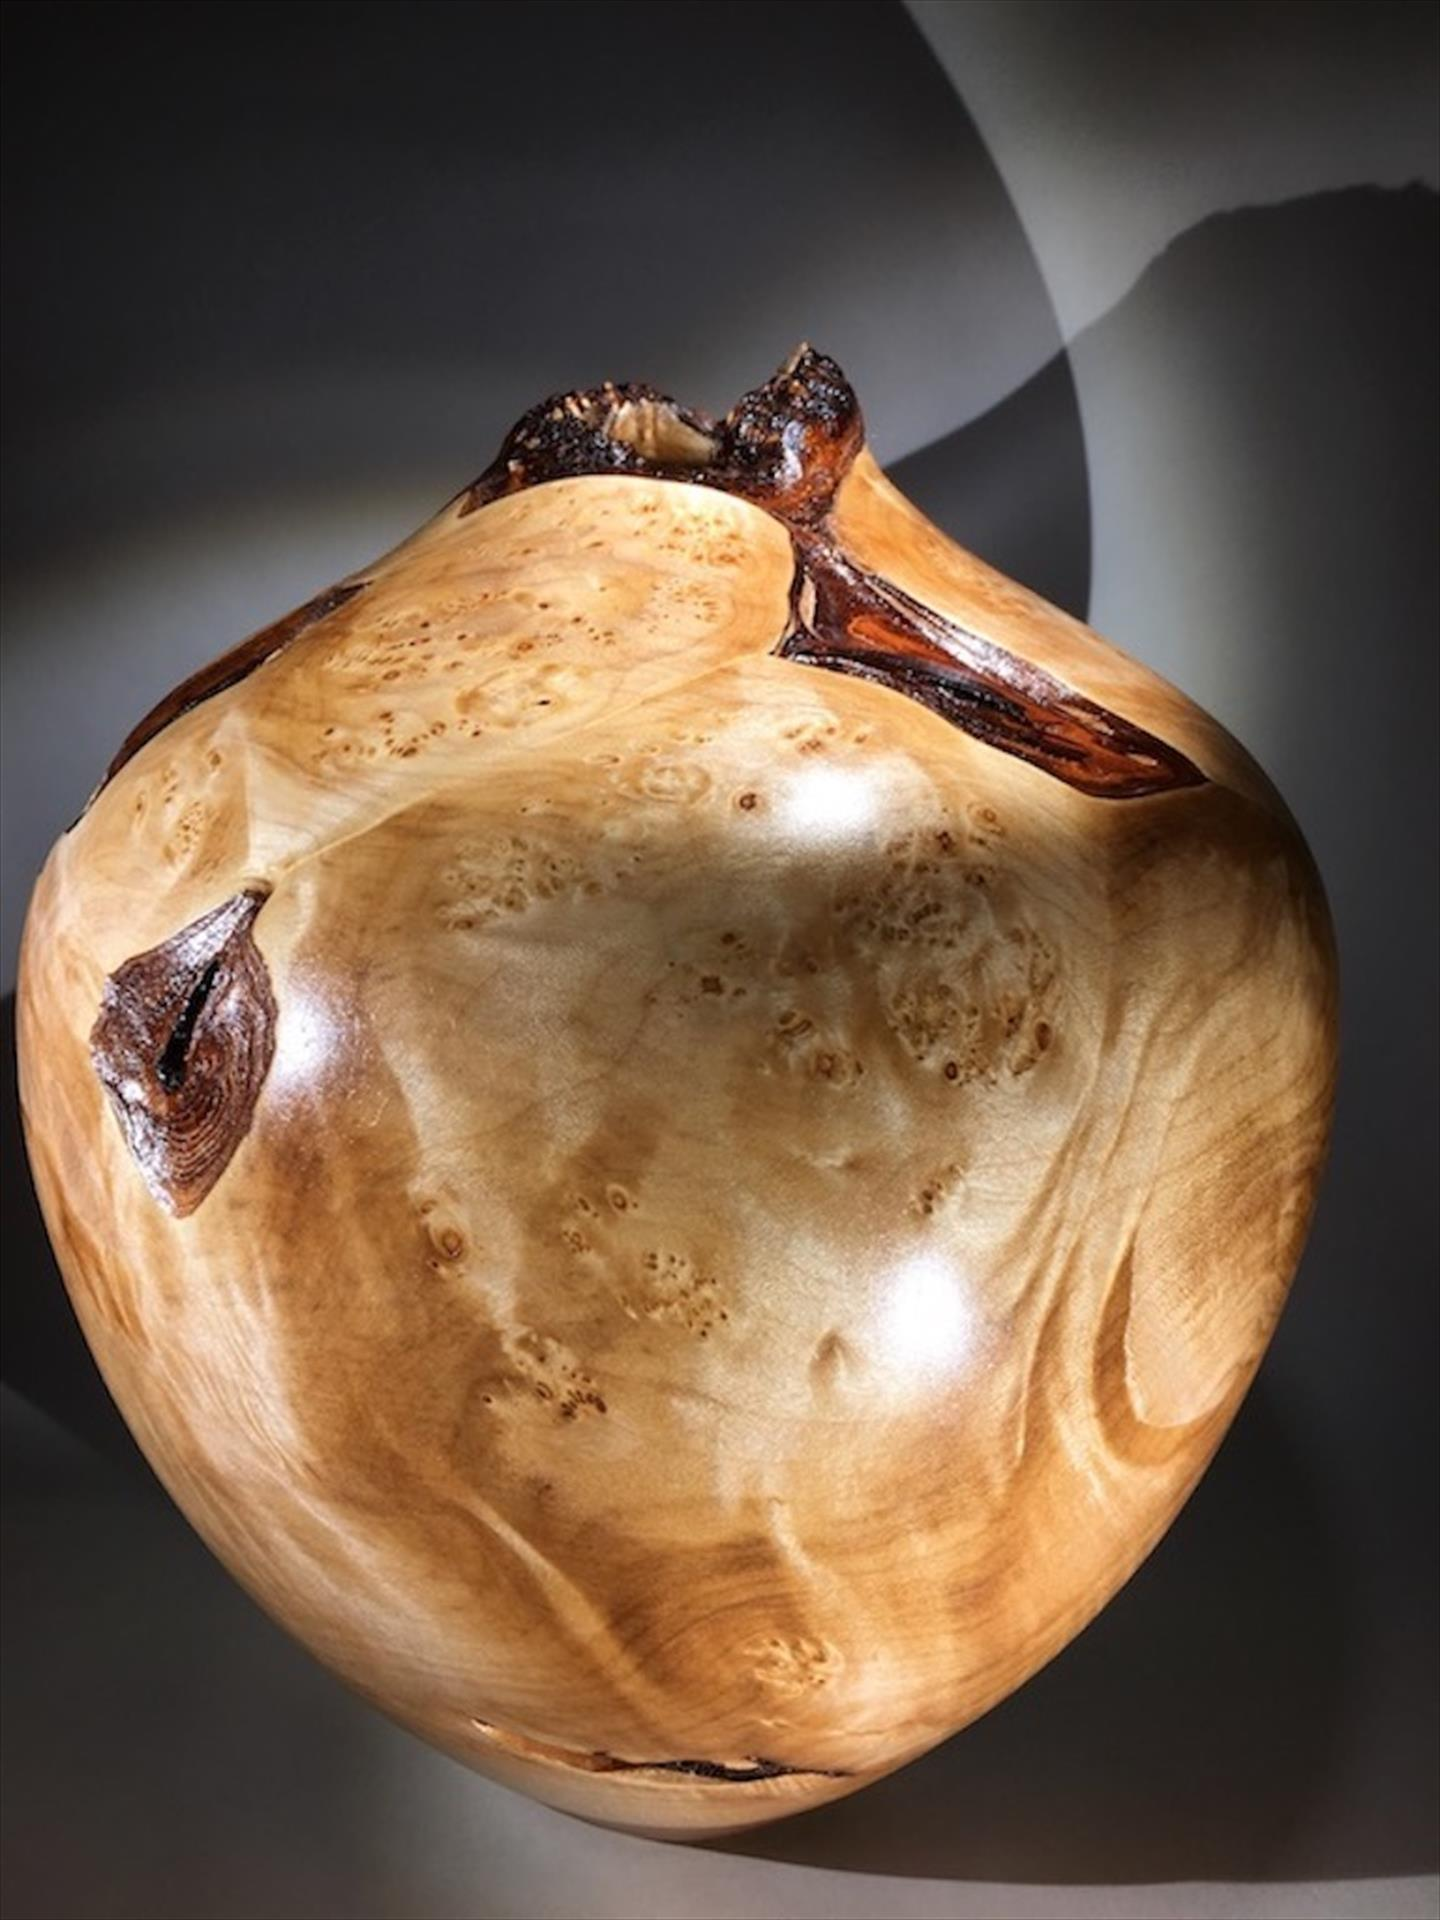 Max McBurnett, Maple Burl with Bark Inclusion and Spalting